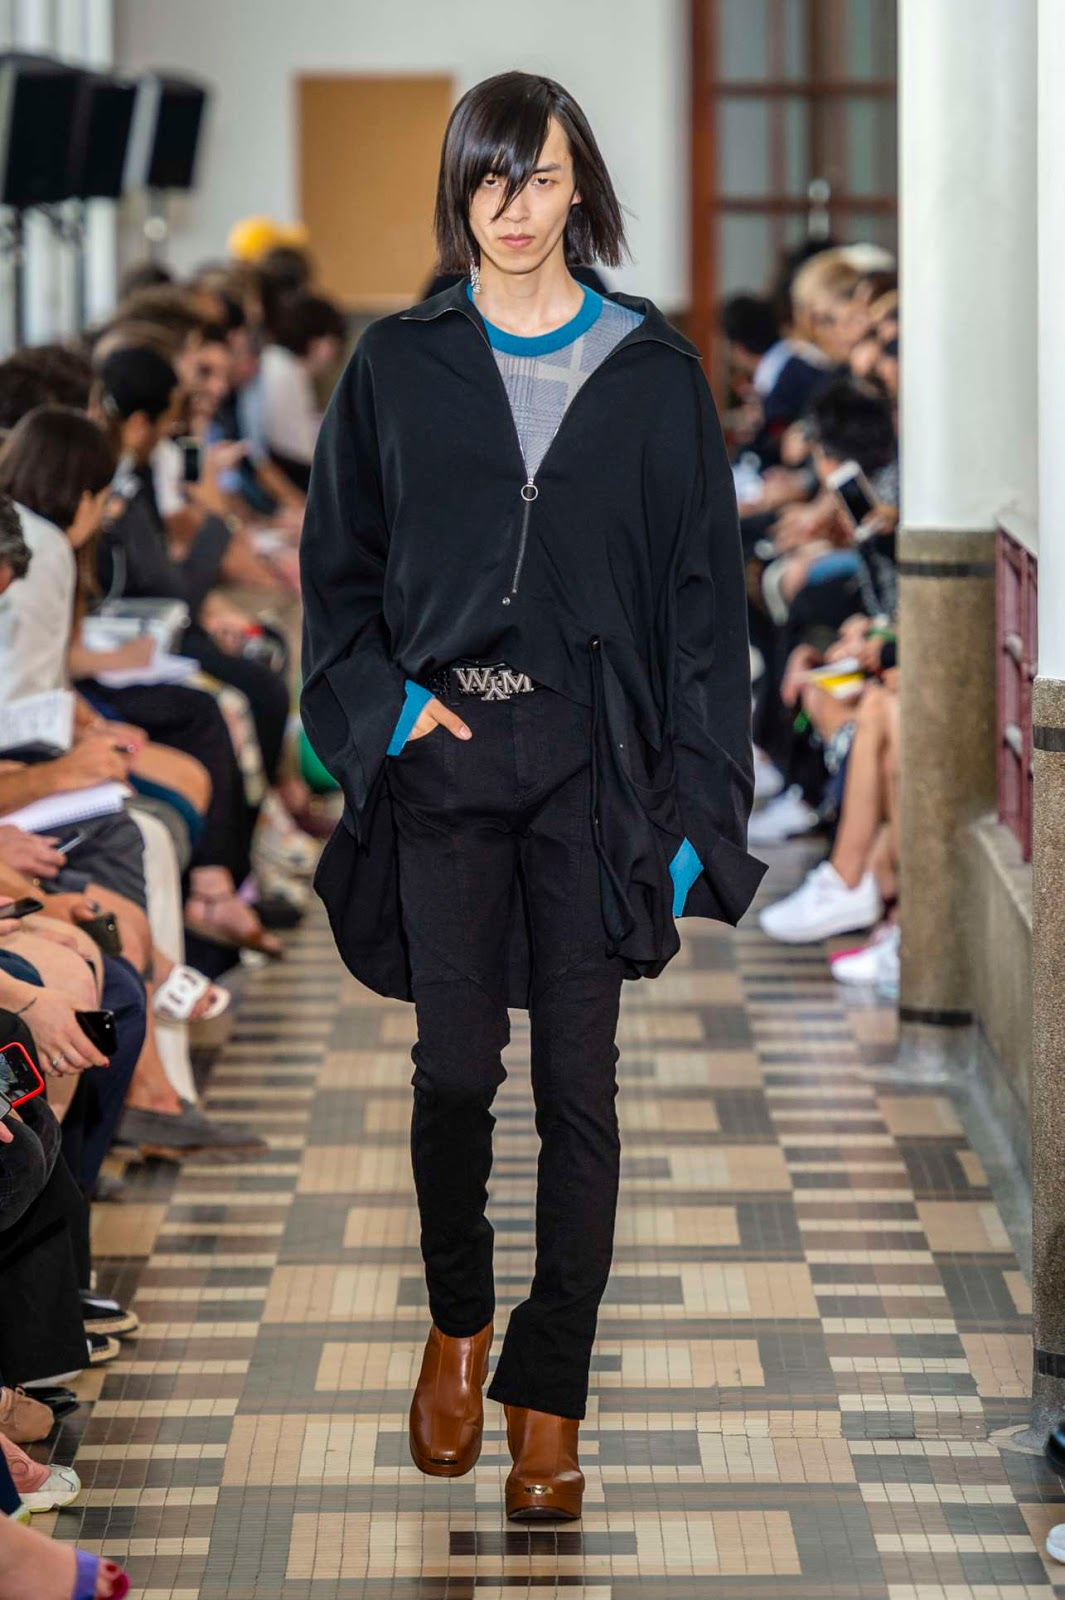 Wooyoungmi Spring Summer 2019 Paris Fashion Week Male